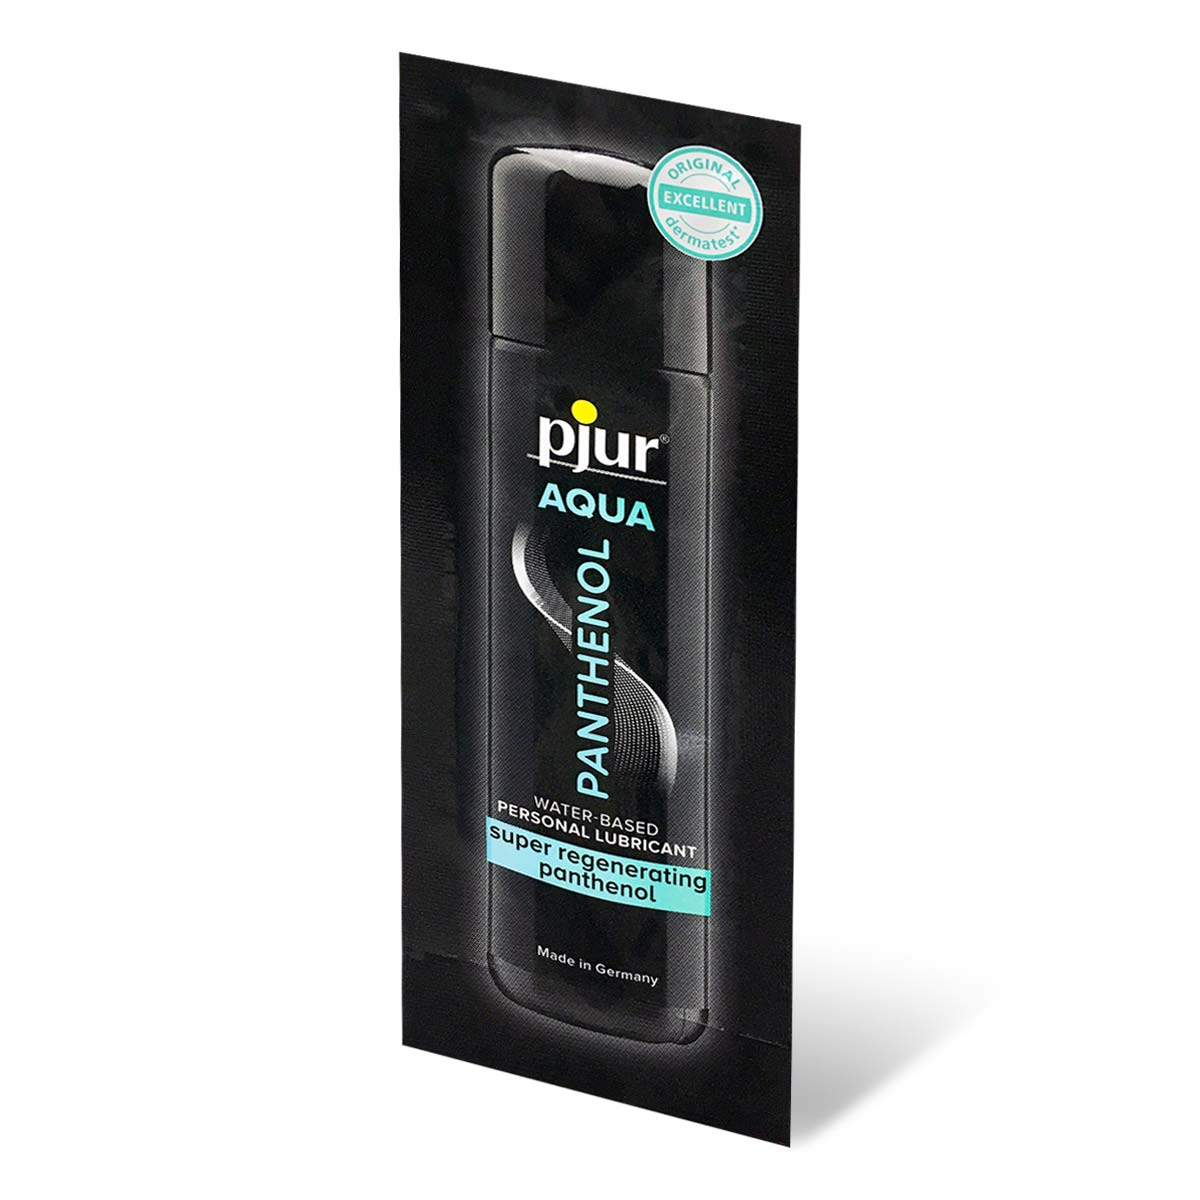 pjur AQUA Panthenol 2ml Water-based Lubricant